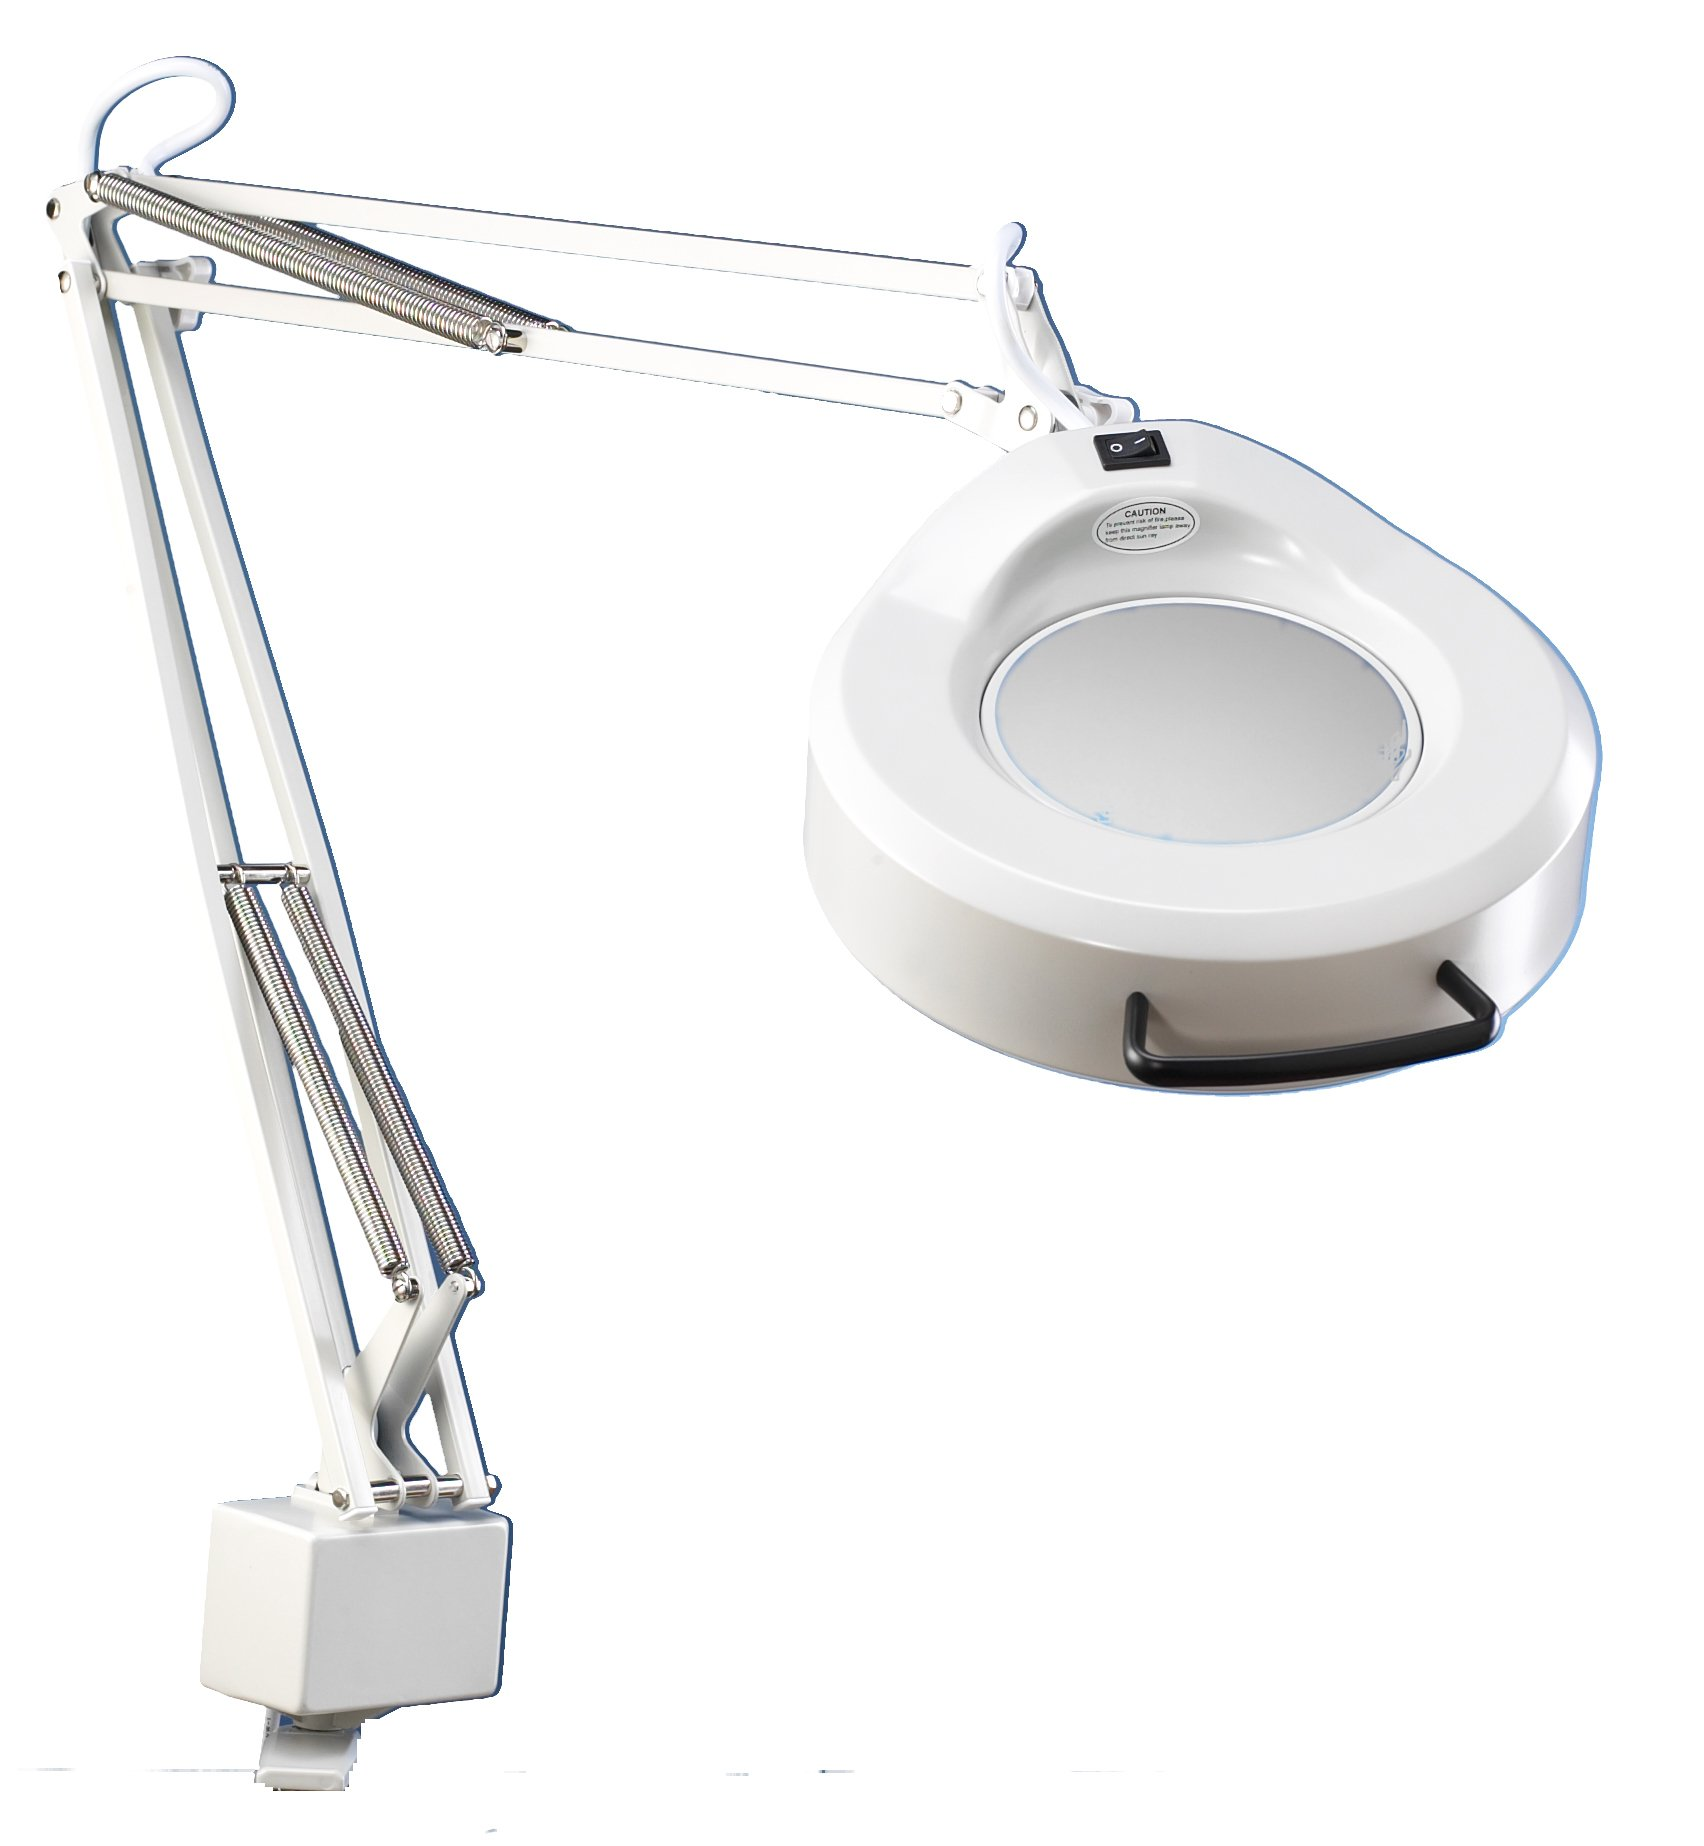 Luxo 16346LG IFM Magnifier, 45'' External Spring Arm, 5-Diopter, Edge Clamp, Light Grey by Luxo